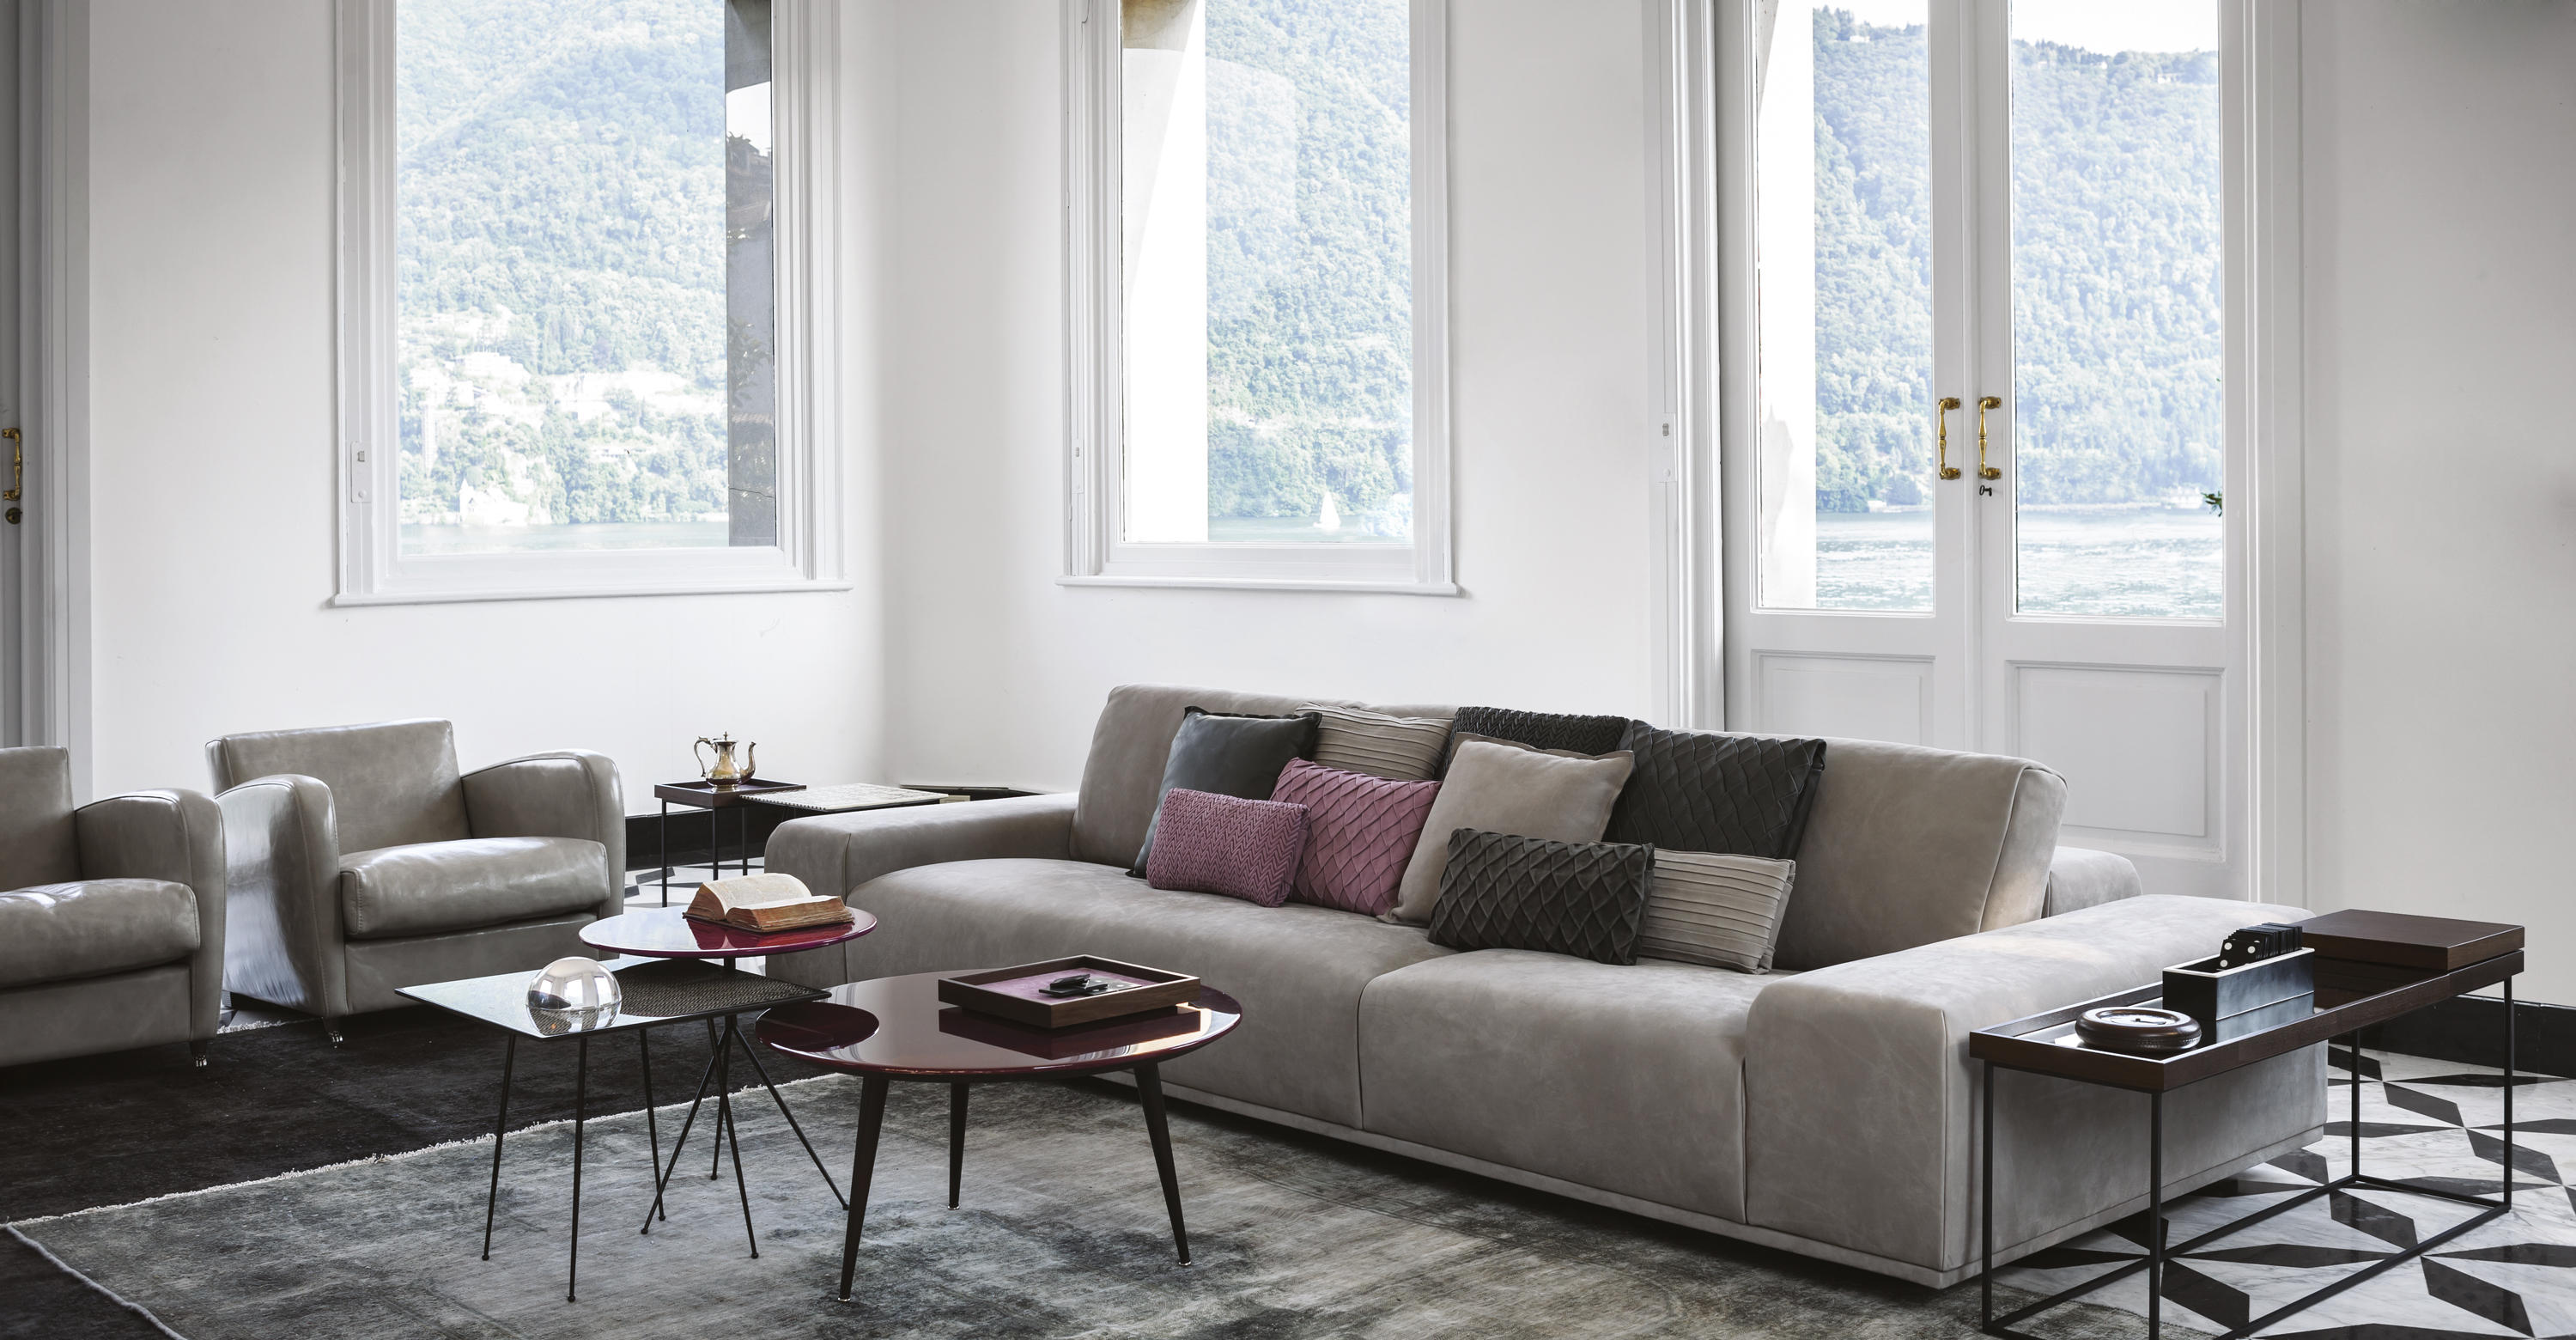 monsieur sofa sofas from baxter architonic